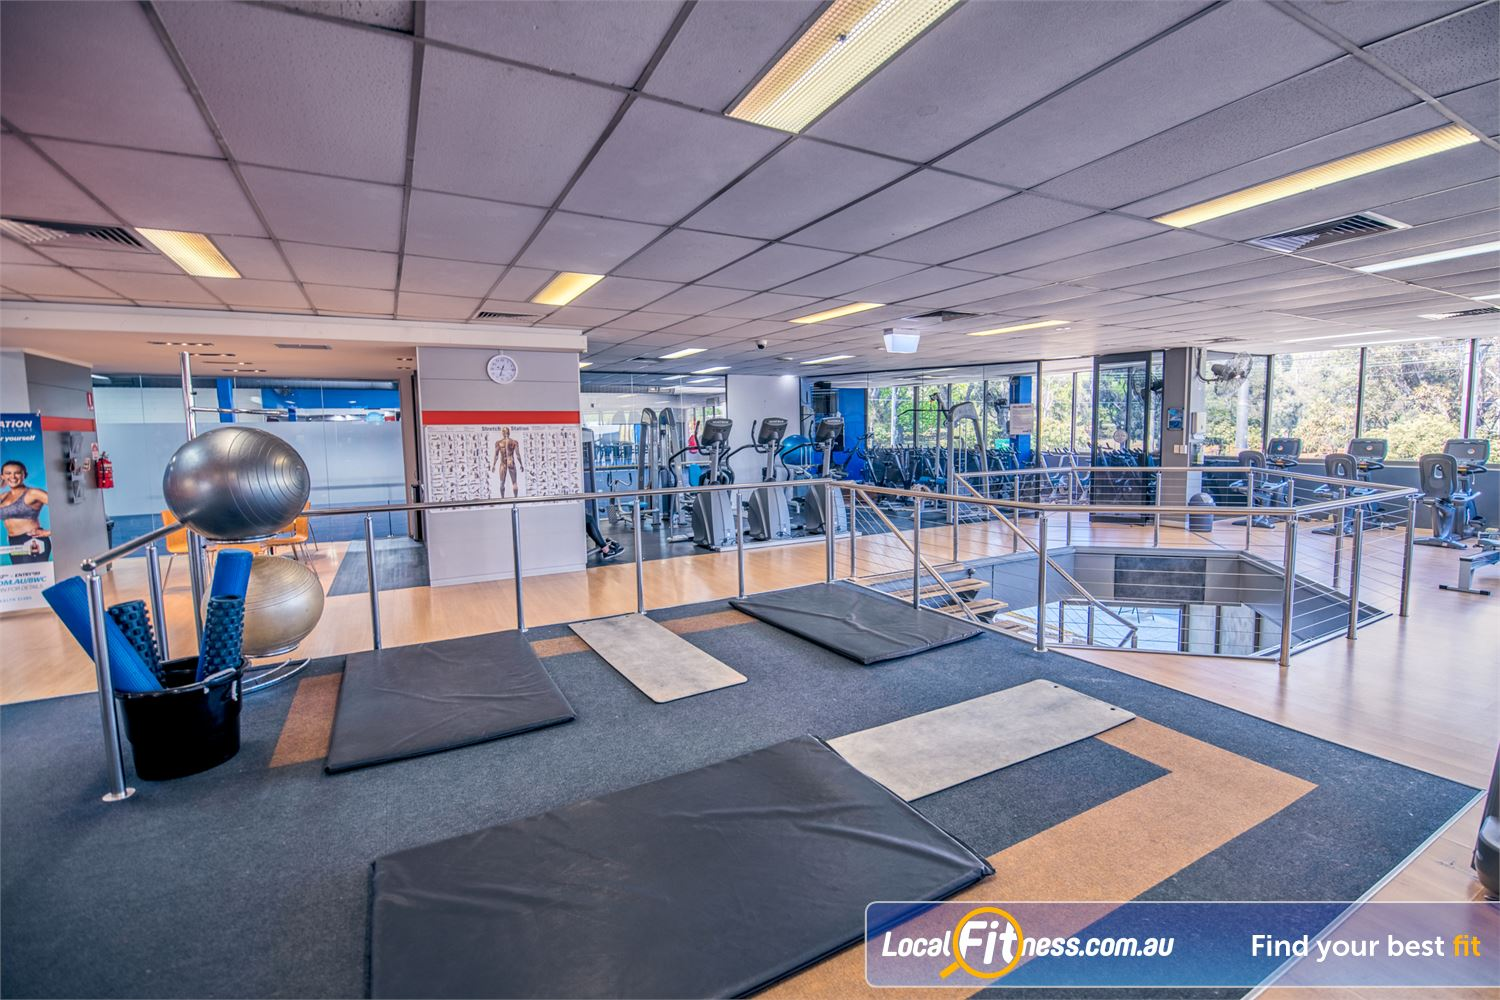 Goodlife Health Clubs Balwyn The spacious abs and stretching area with fitballs, mats, foam rollars and more.